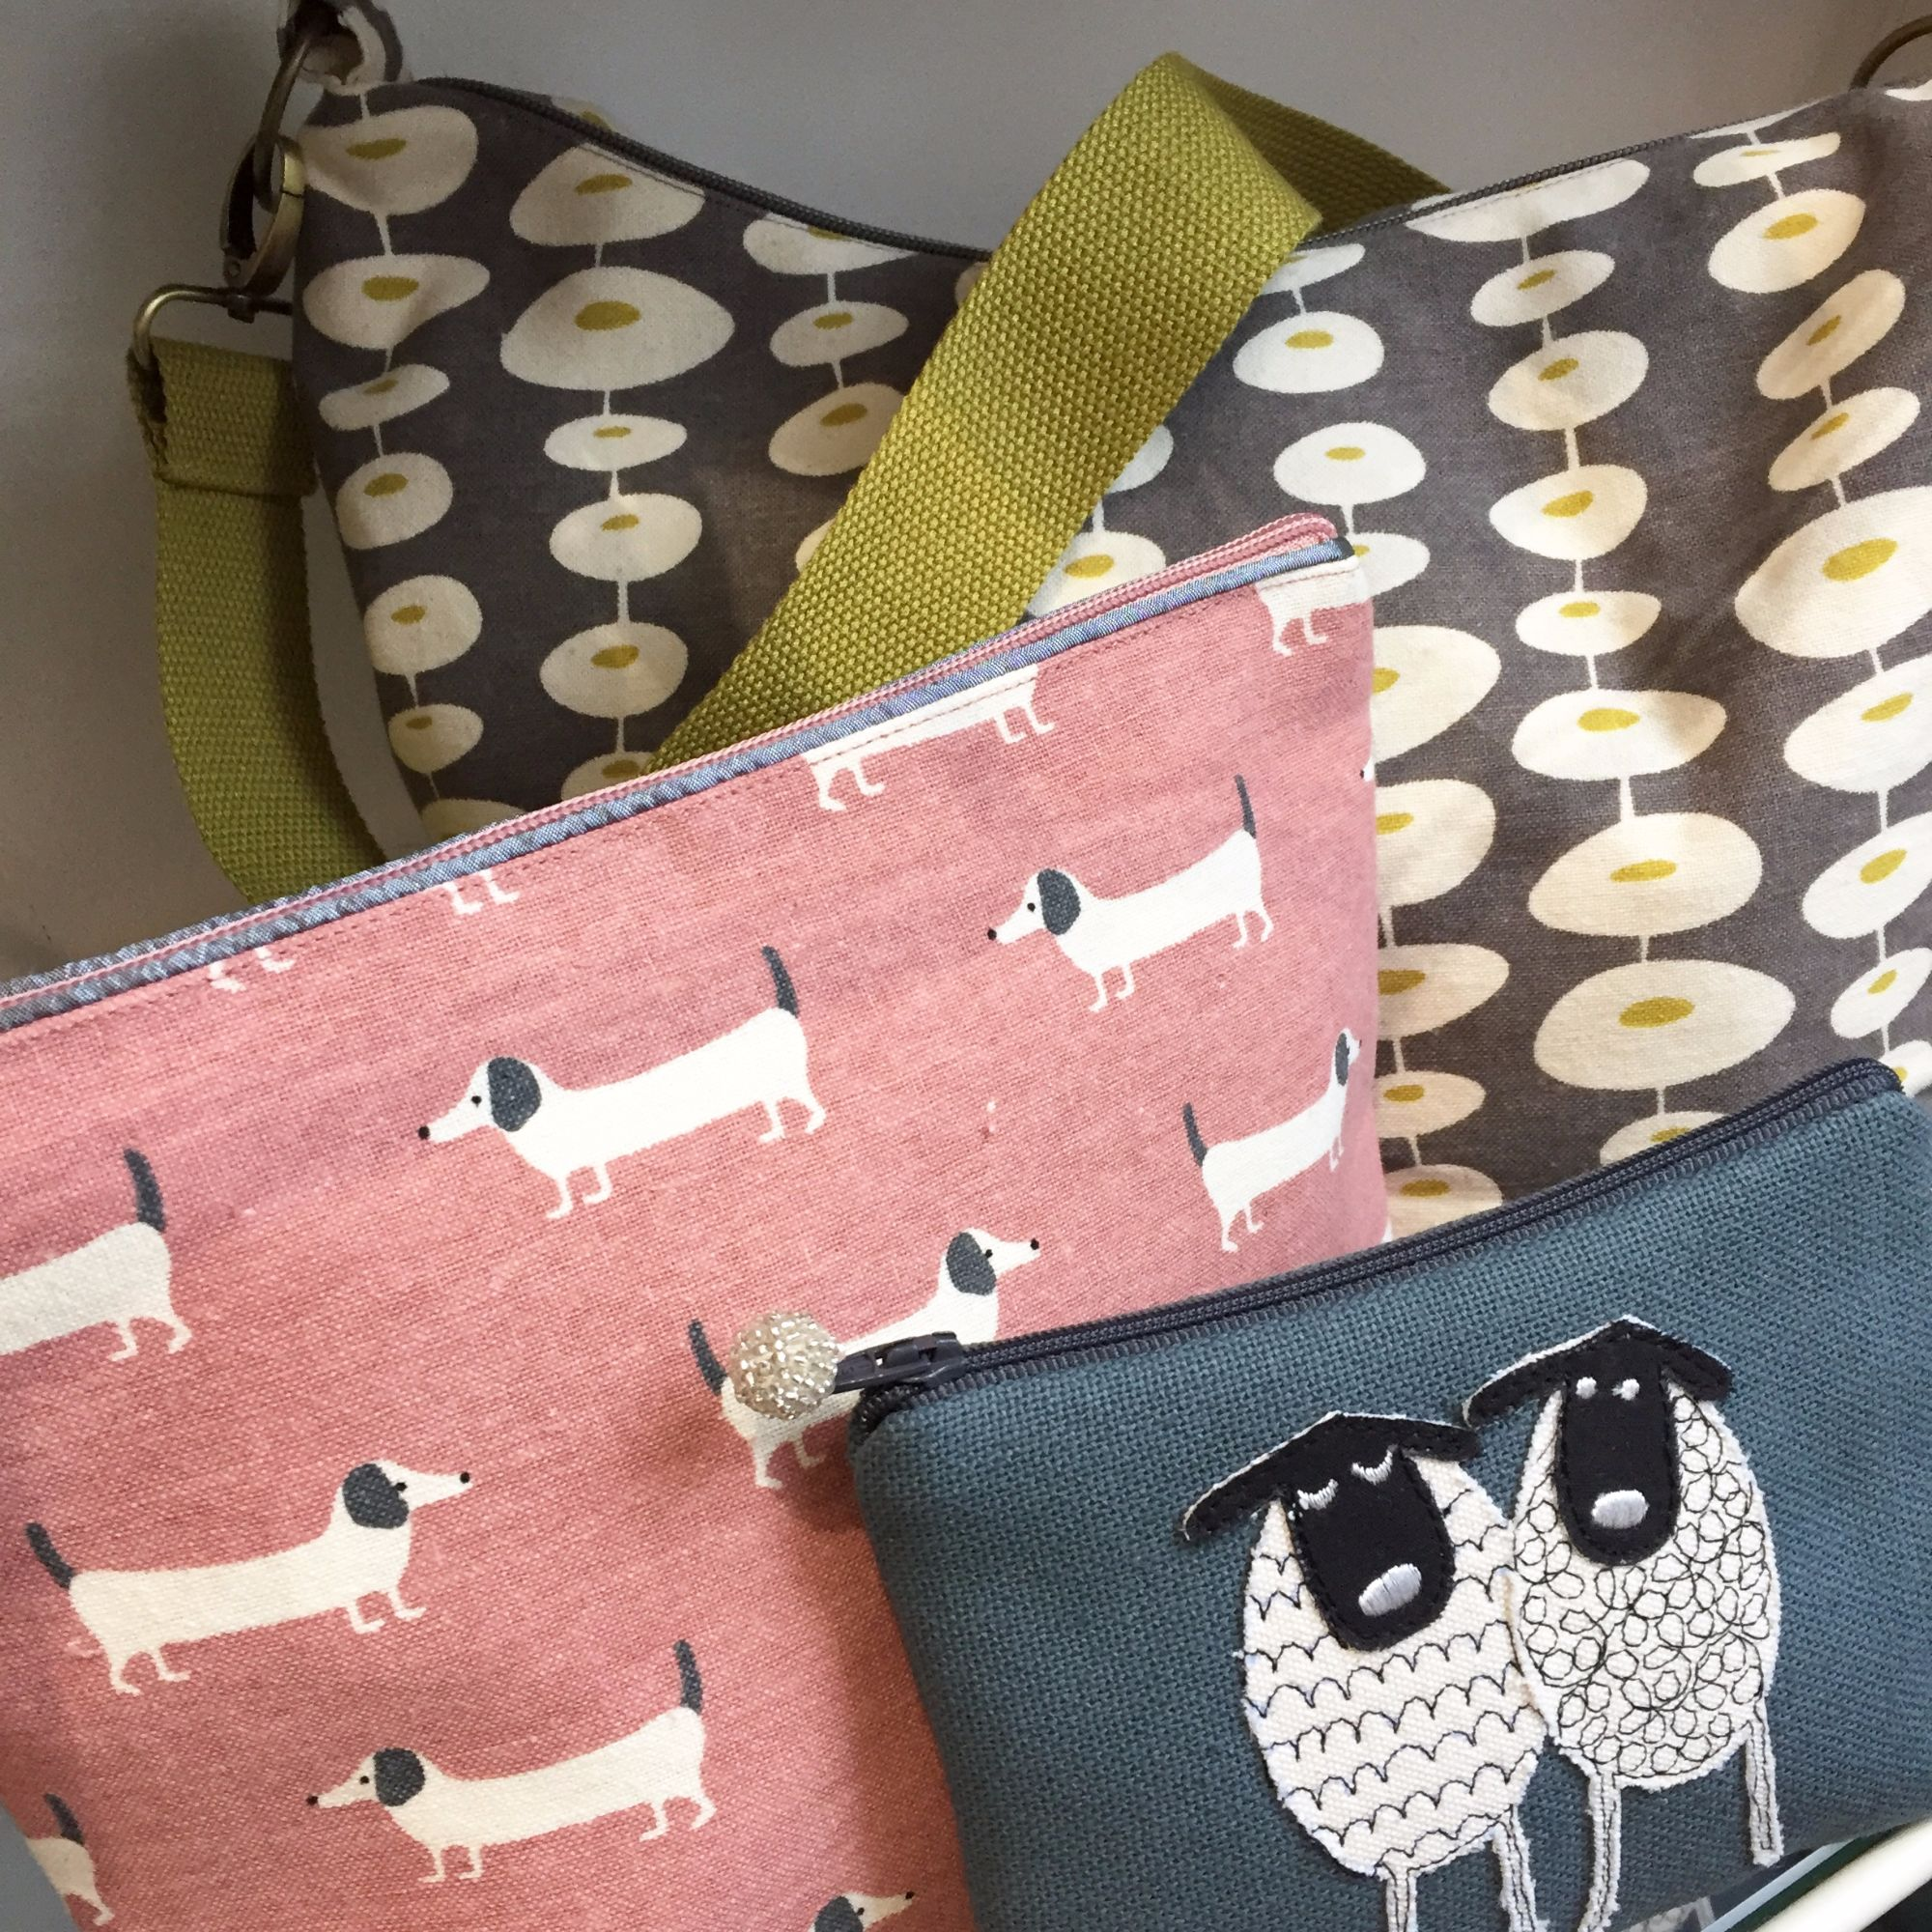 Lua's array of bags, washbags and purses